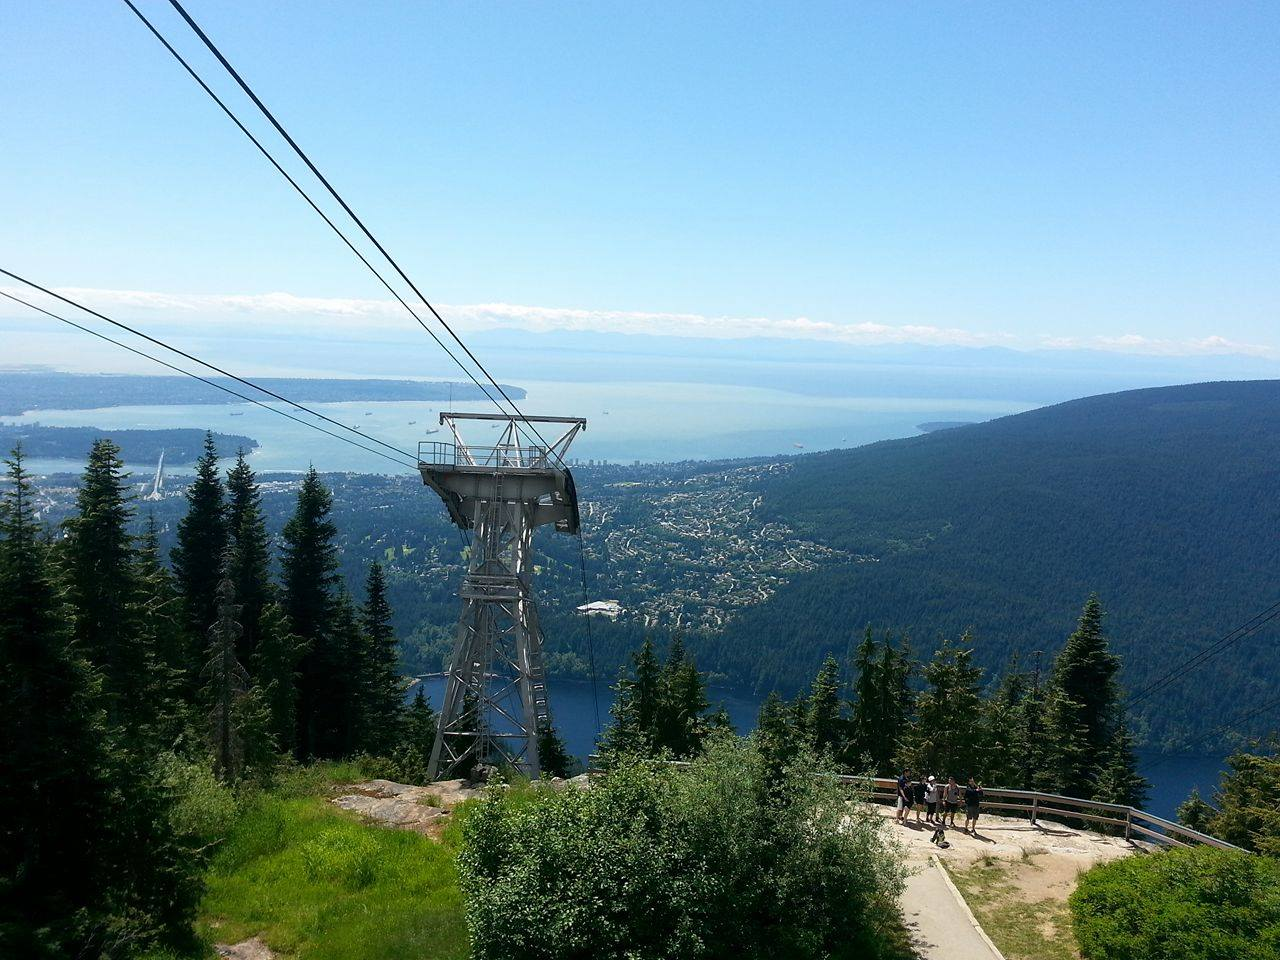 Image of the view from Grouse Mountain in North vancouver